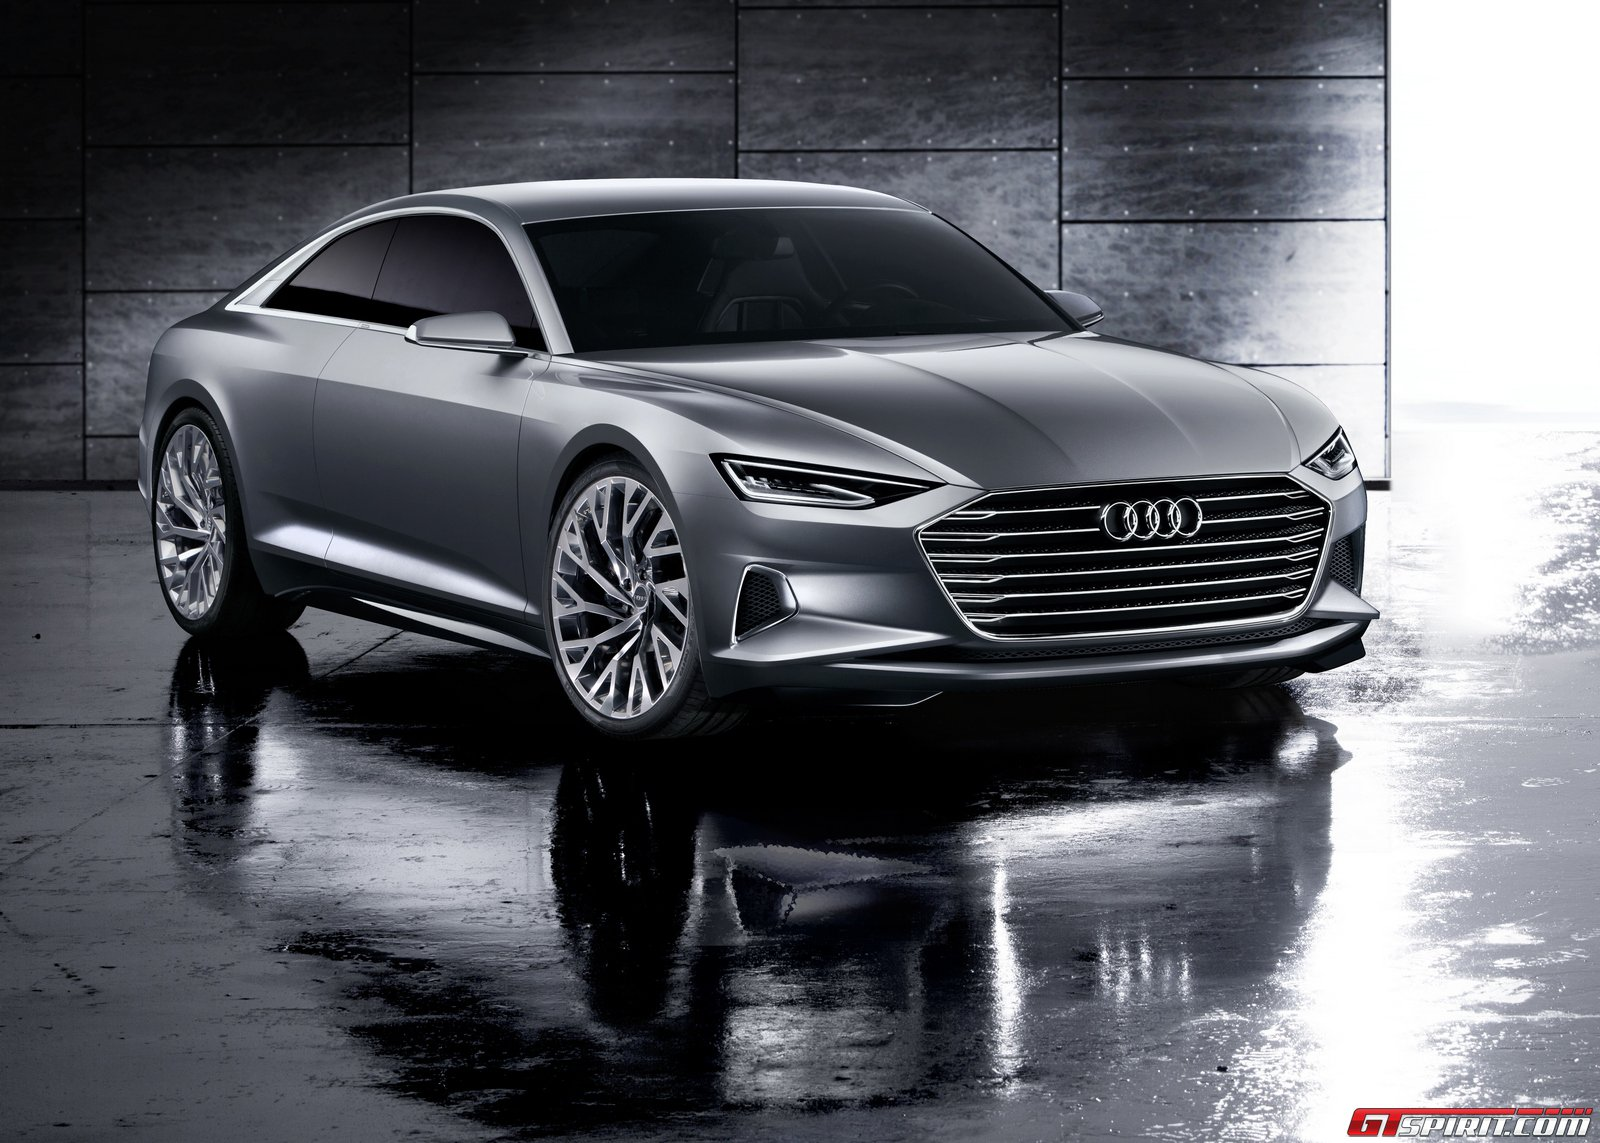 Now Audi S Technical Chief Ulrich Hackenberg Has Confirmed That The Next Generation A8